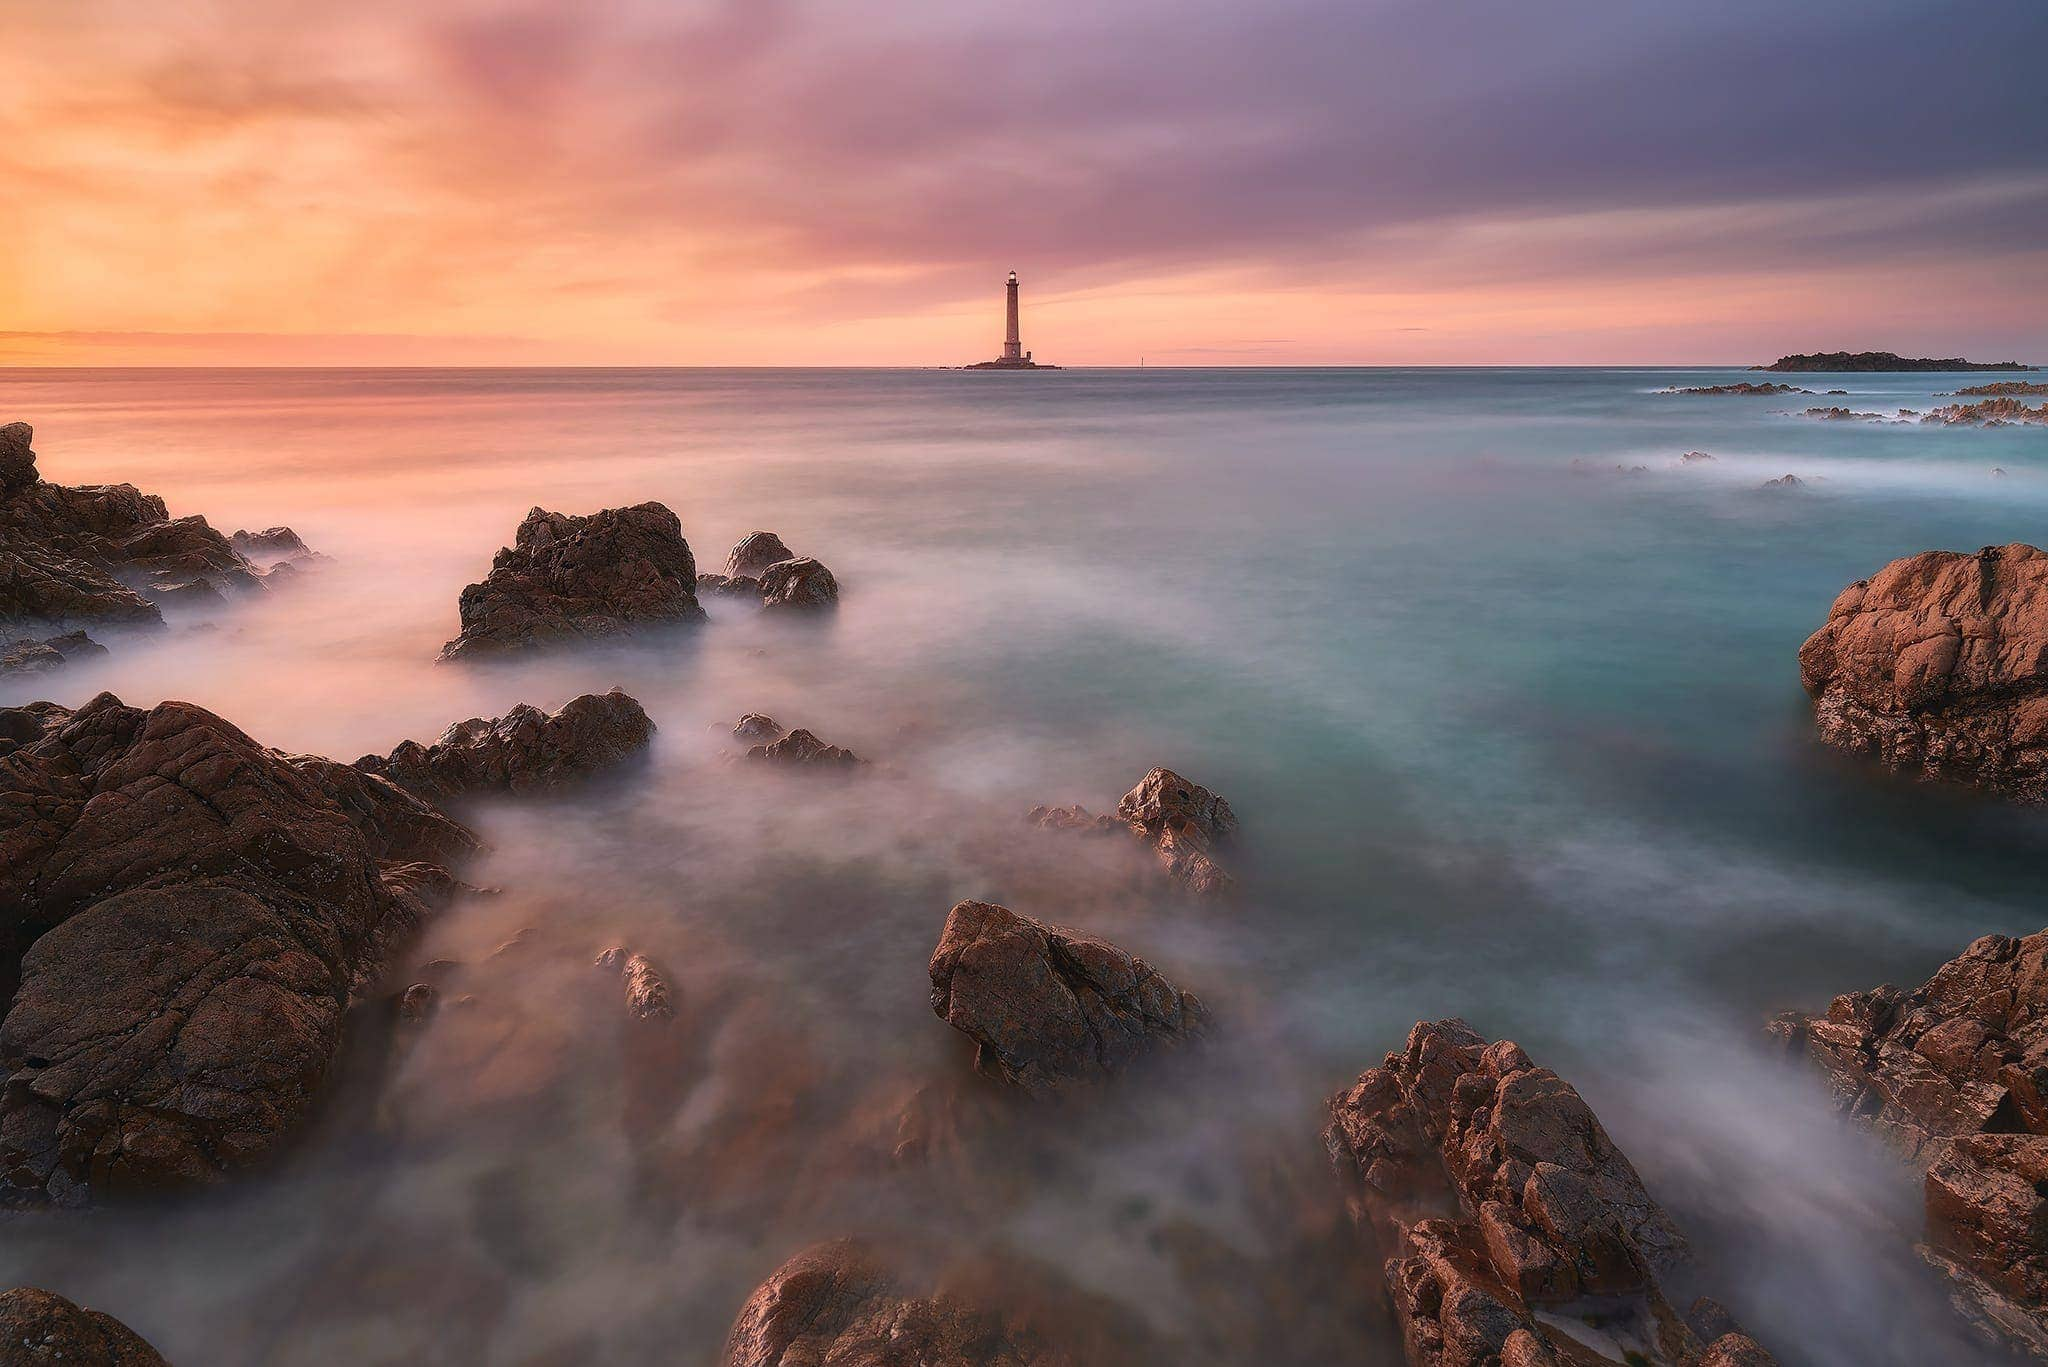 Francesco Gola Seascape Landscape Photography Long Exposure Faro Phare Lighthouse Cap Hague Goury France Normandy Sunset